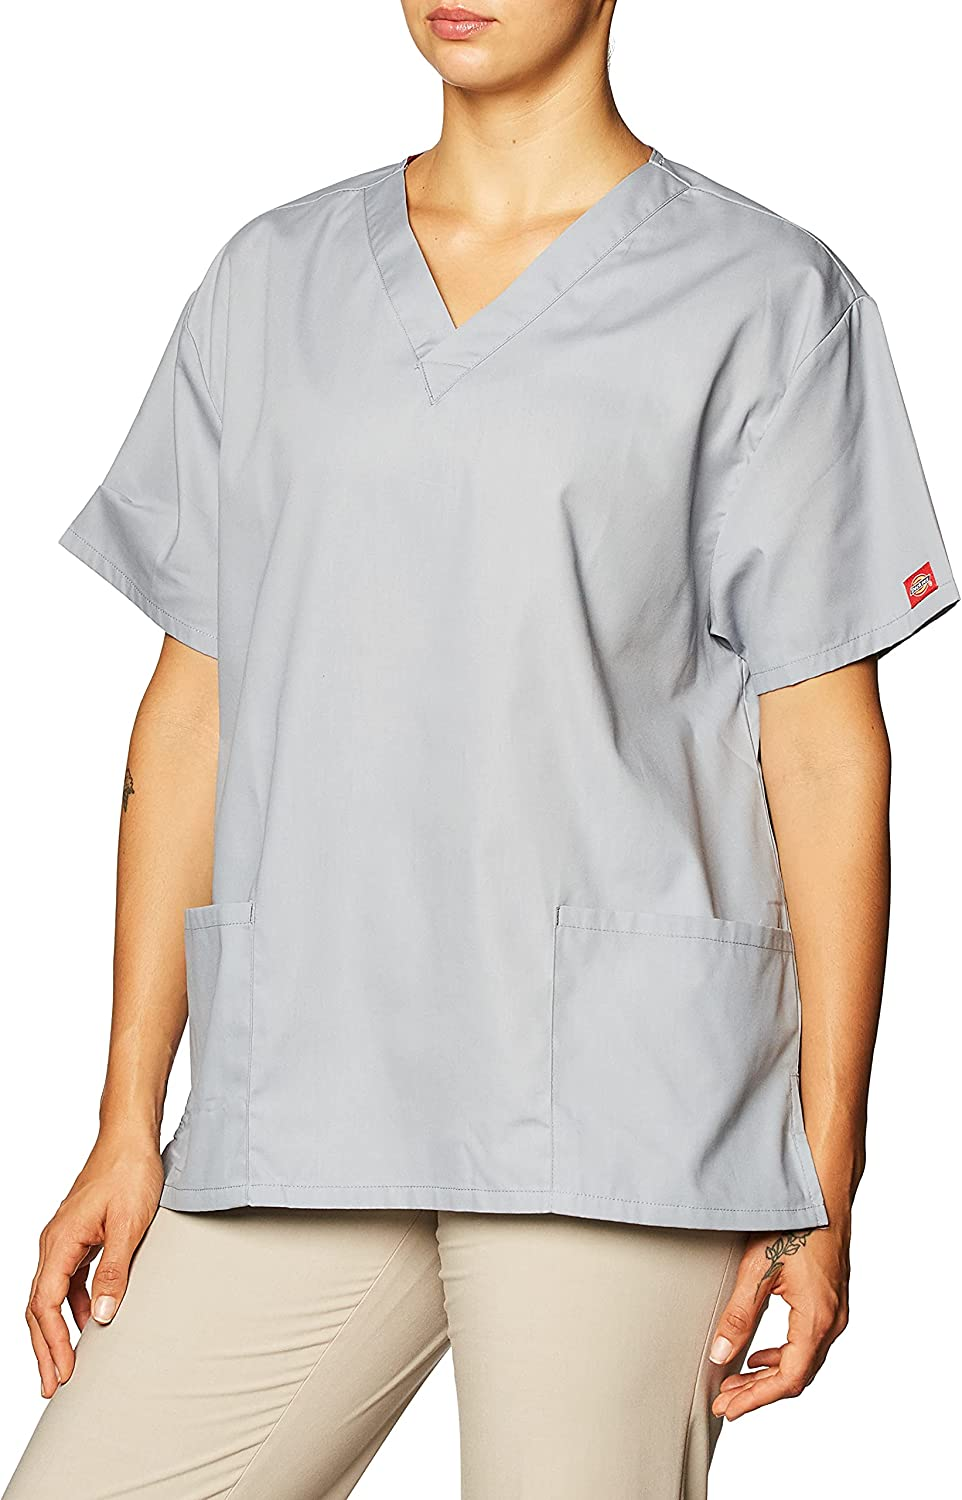 Dickies Women's EDS Signature Scrubs 86706 Missy Fit V-Neck Top